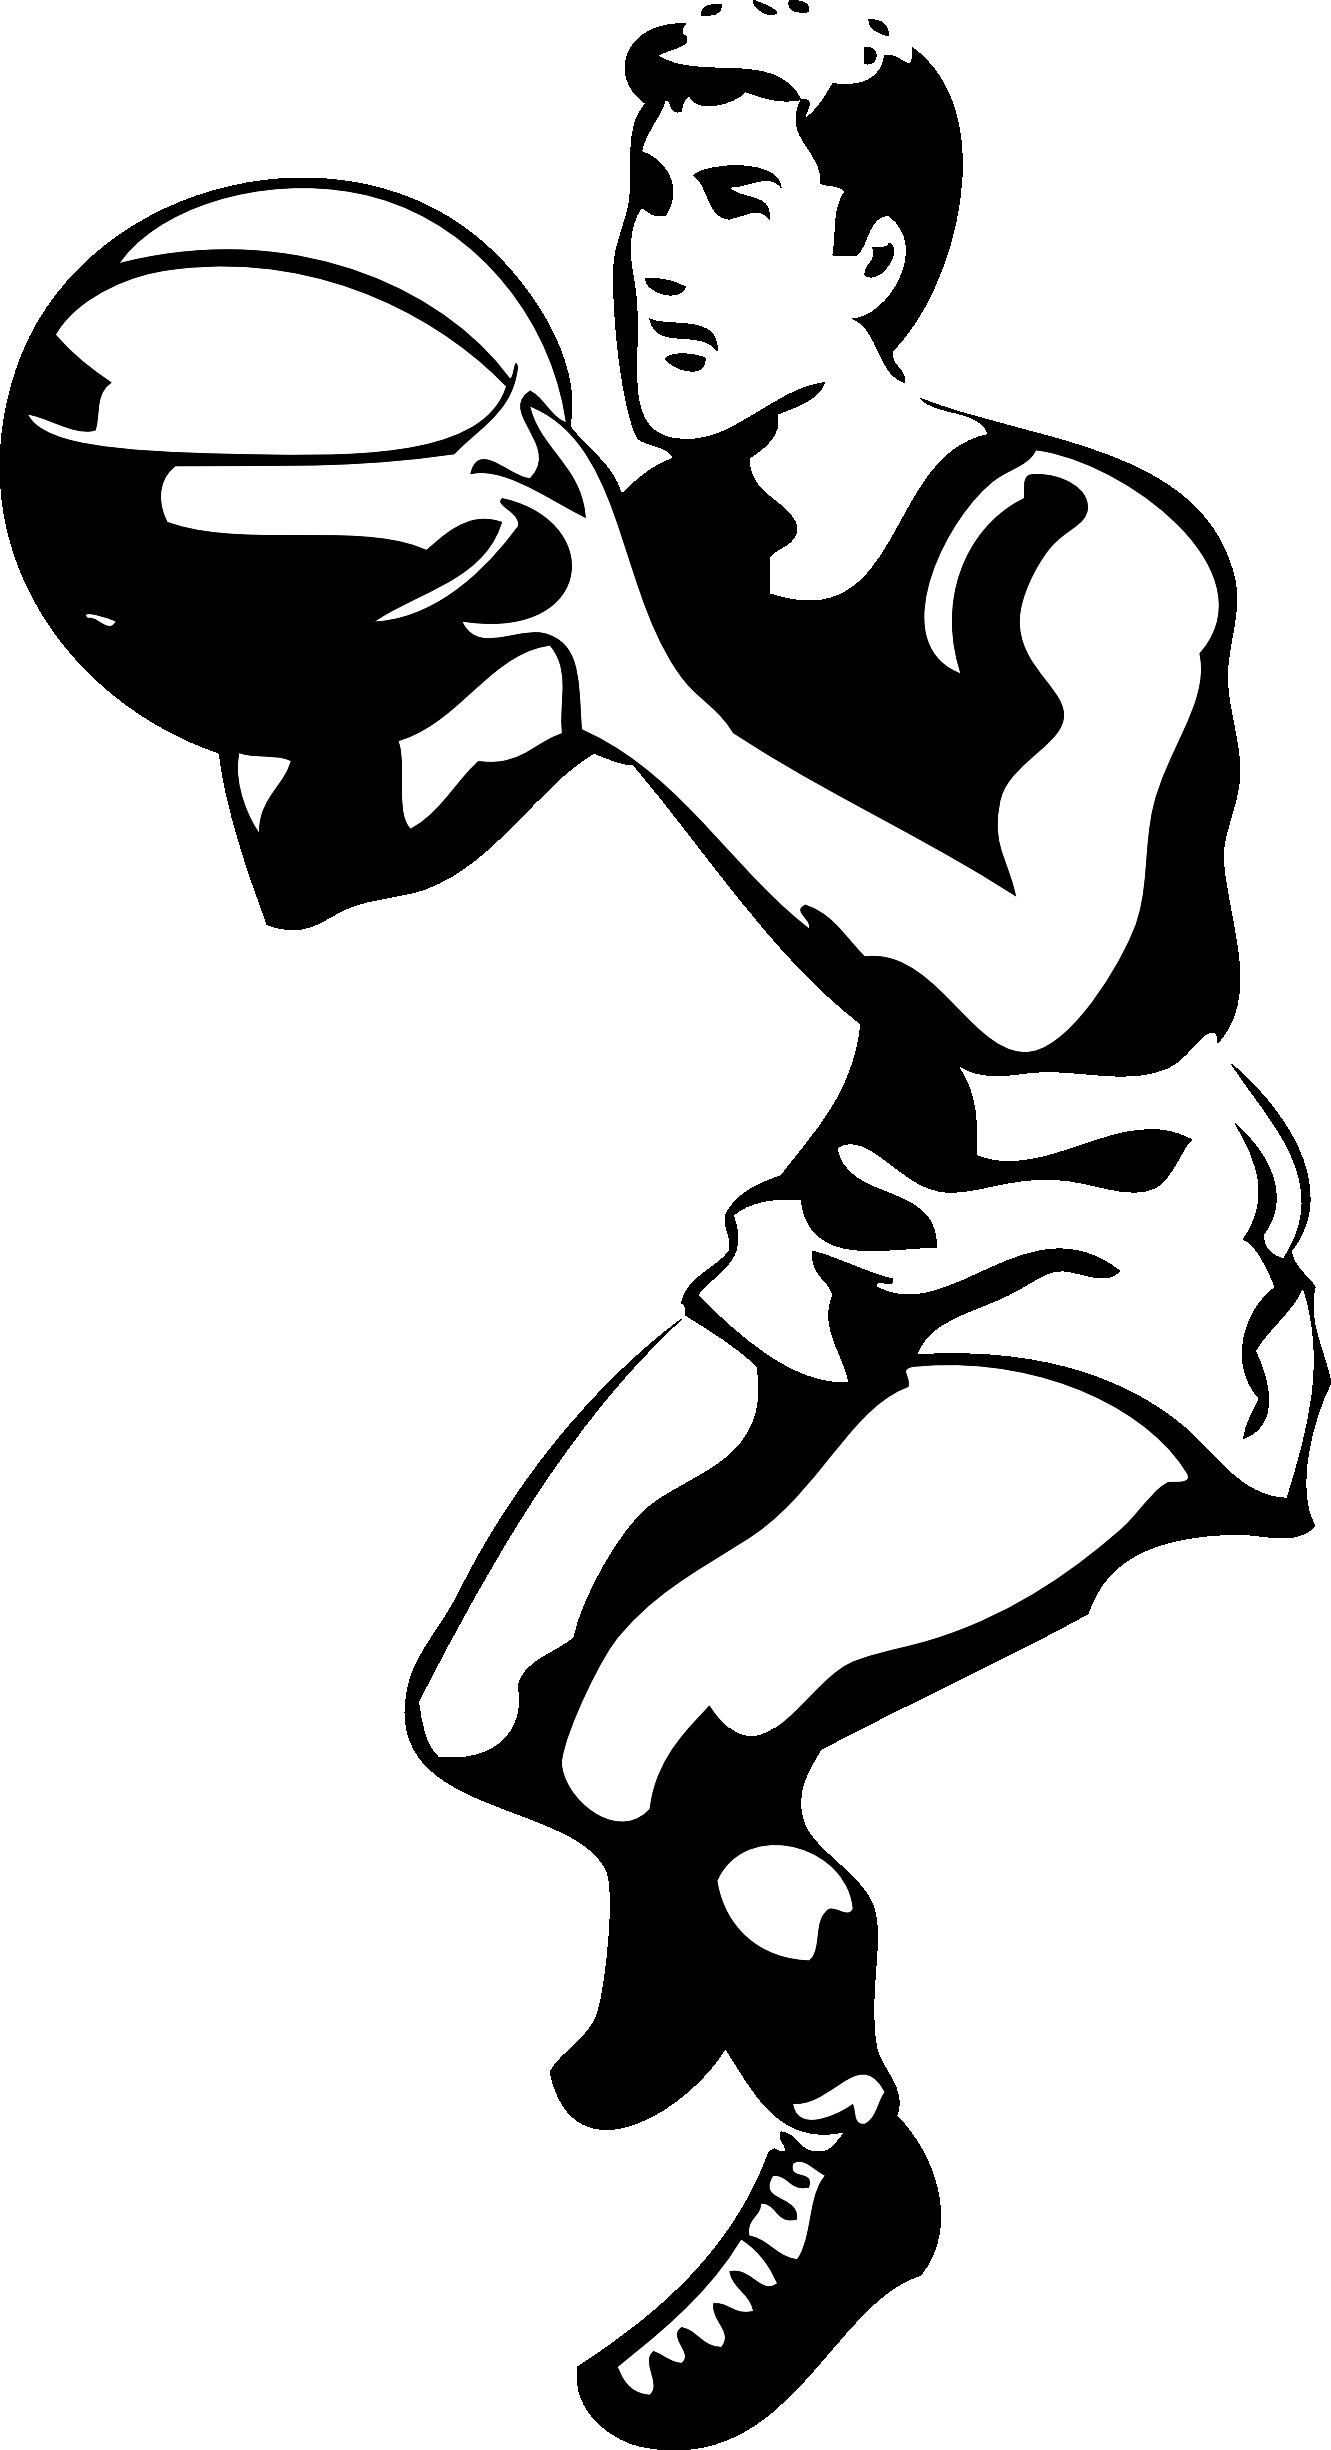 Players clipart black and white. Basketball player panda free